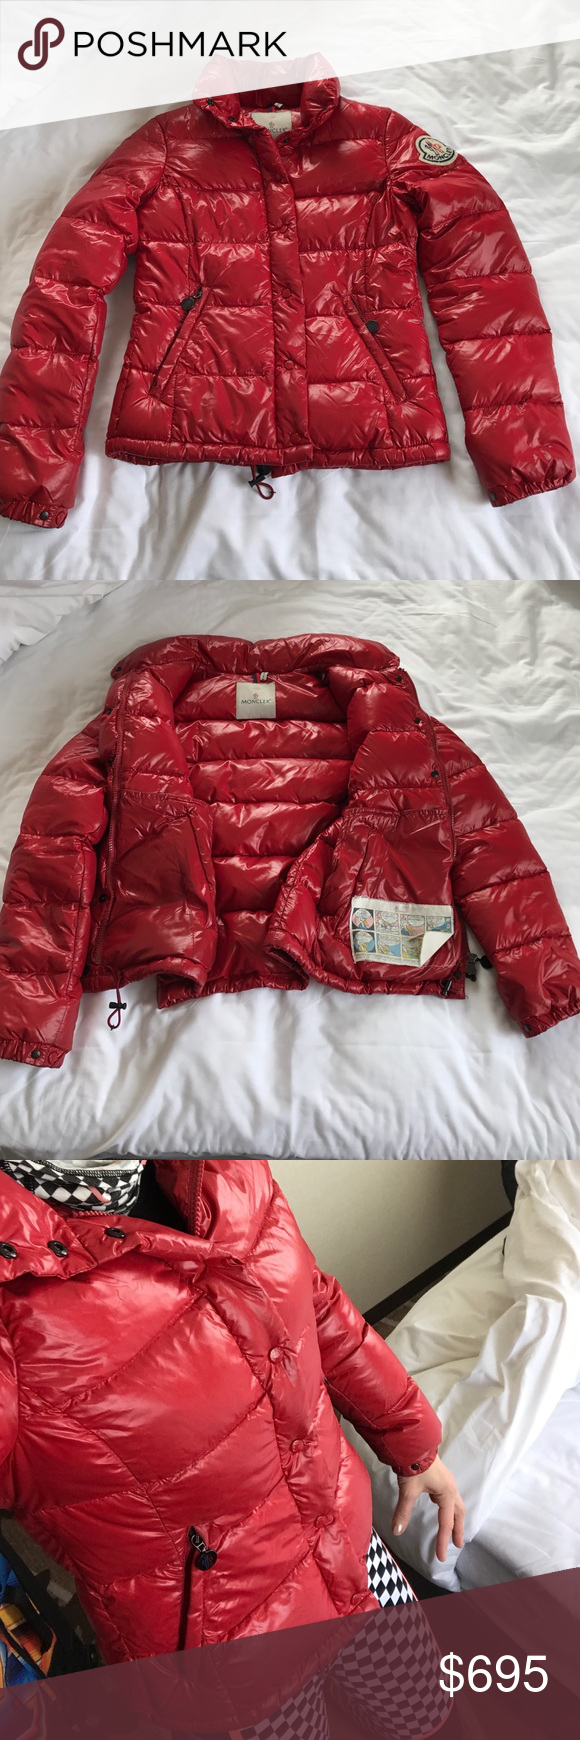 """Authentic moncler down red jacket Authentic moncler down red jacket, purchased from Bloomingdales , size 0 which is xs . Has a 1/2"""" opening on a side seam but was repaired and otherwise in great condition , pics of all sides/entire jacket are shown Moncler Jackets & Coats Puffers"""